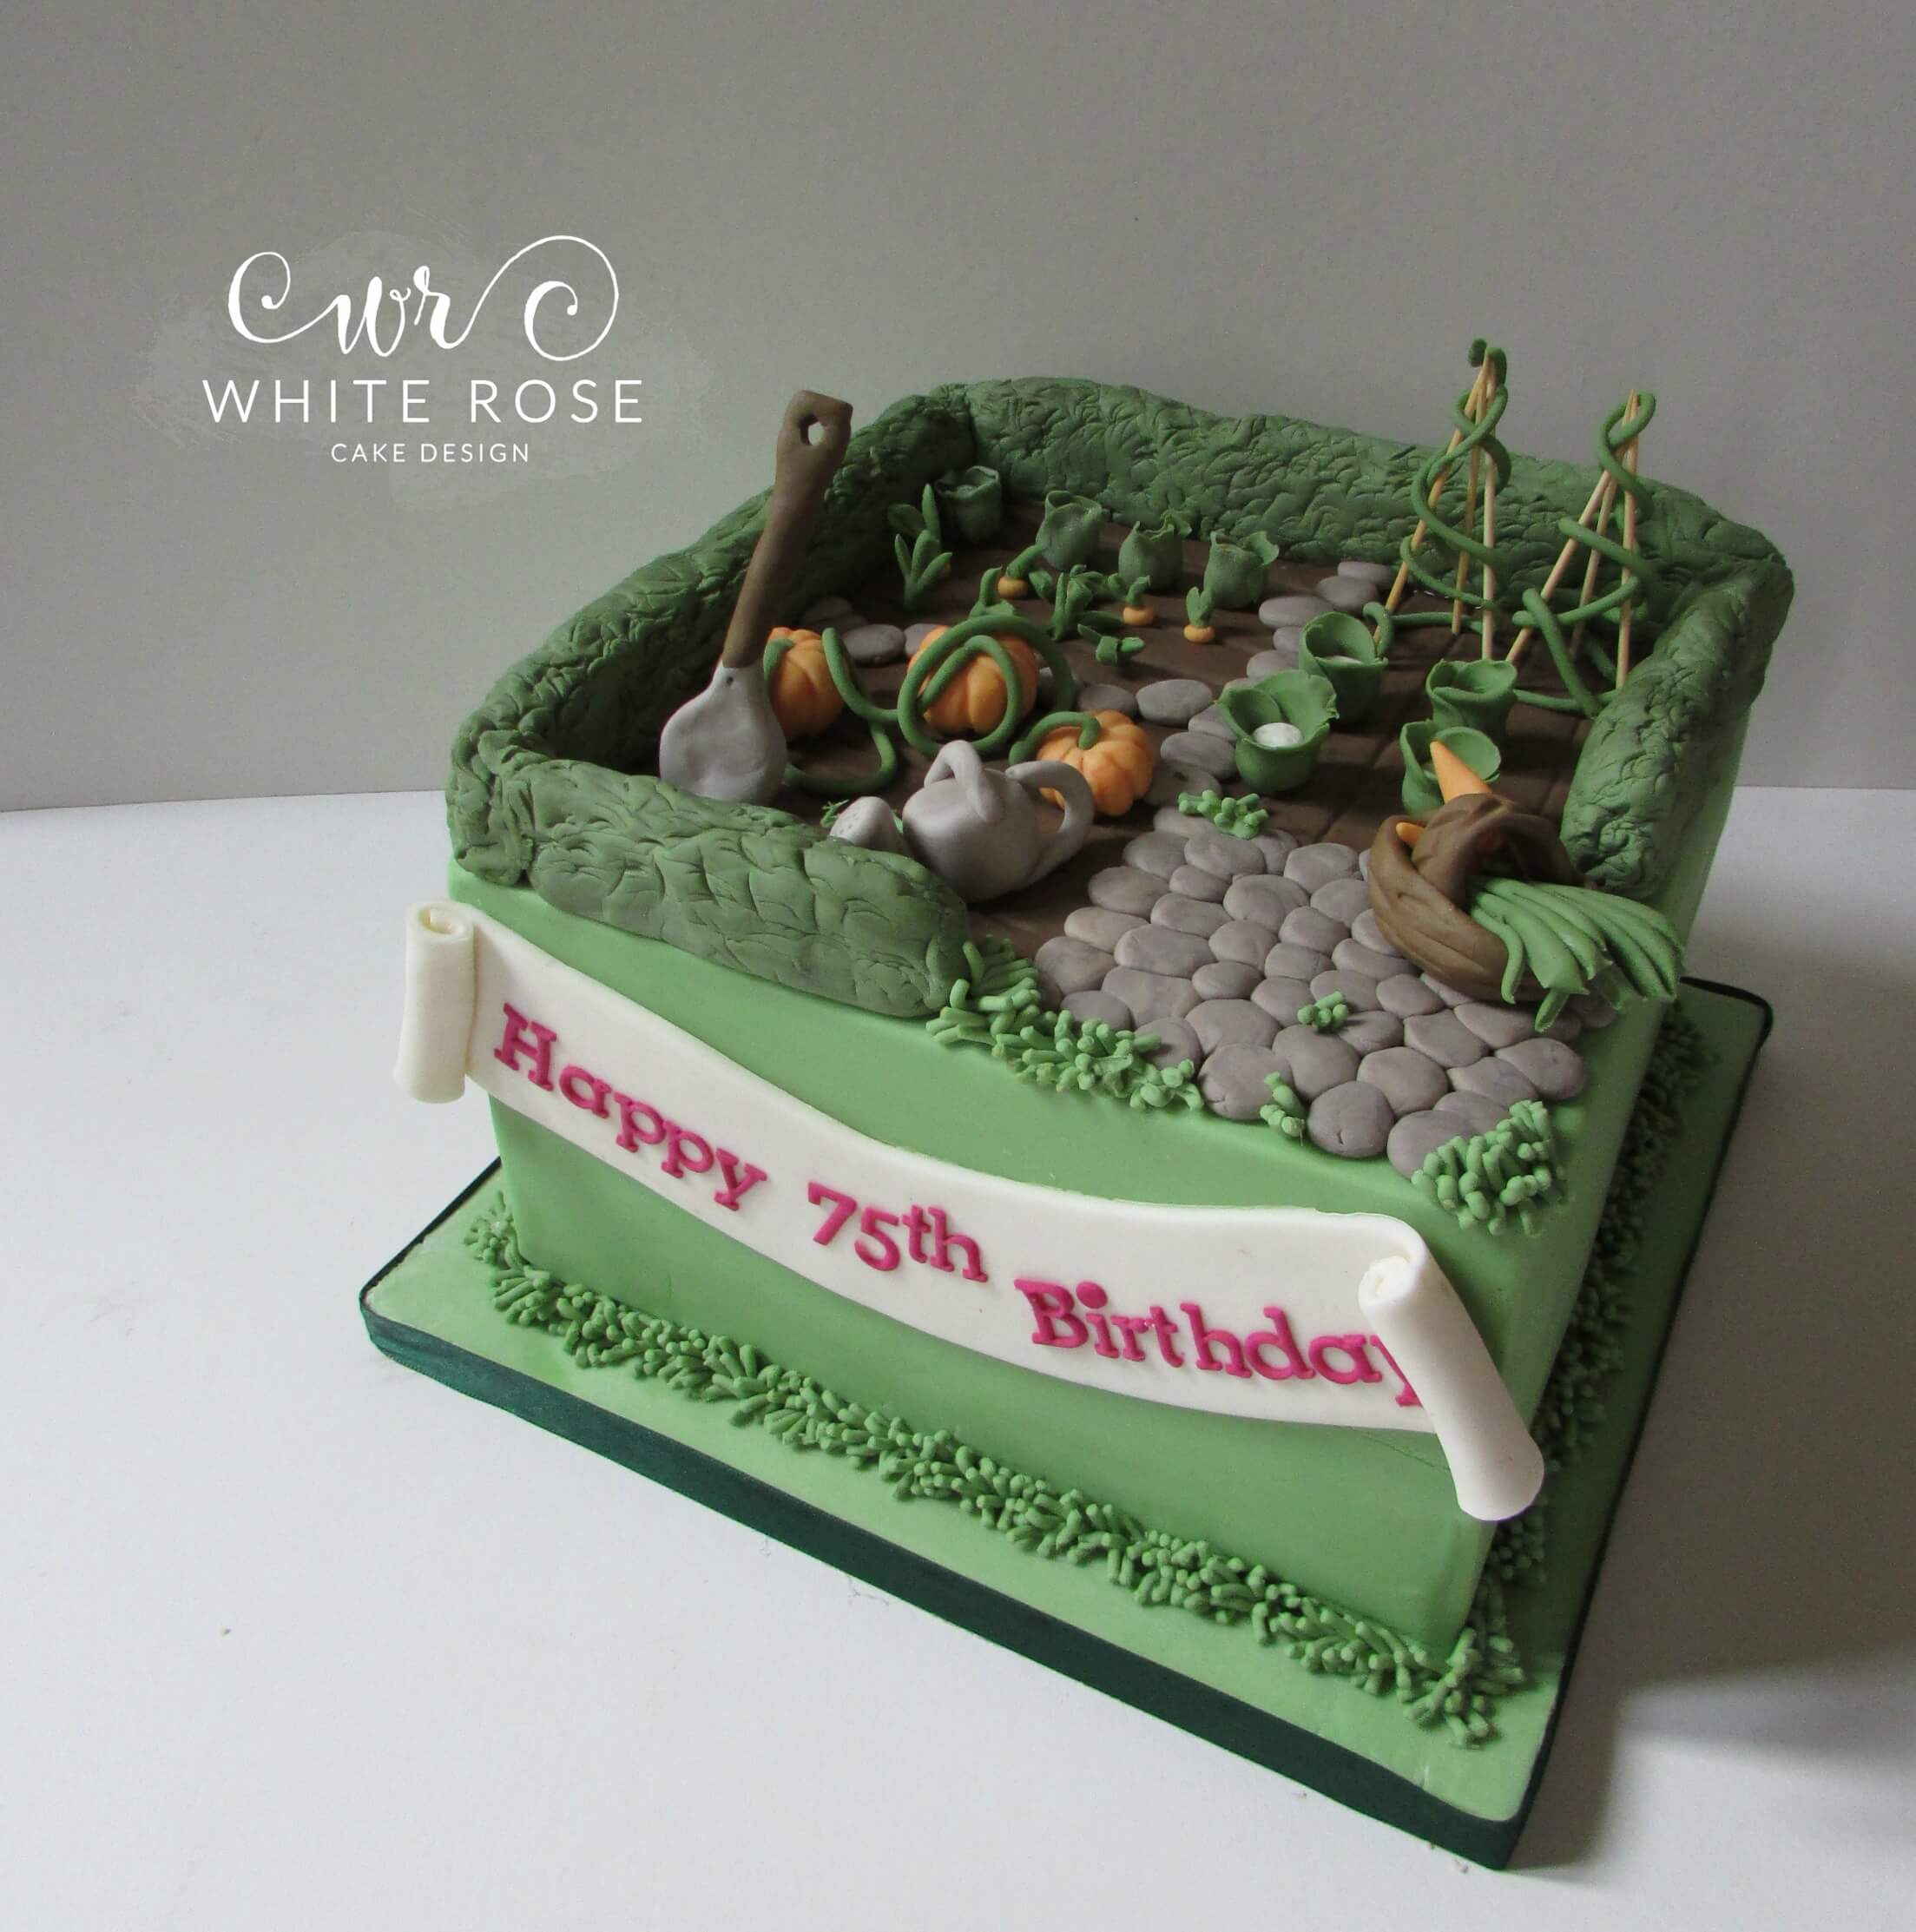 Allotment Garden Themed Birthday Cake 75th Huddersfield Maker2